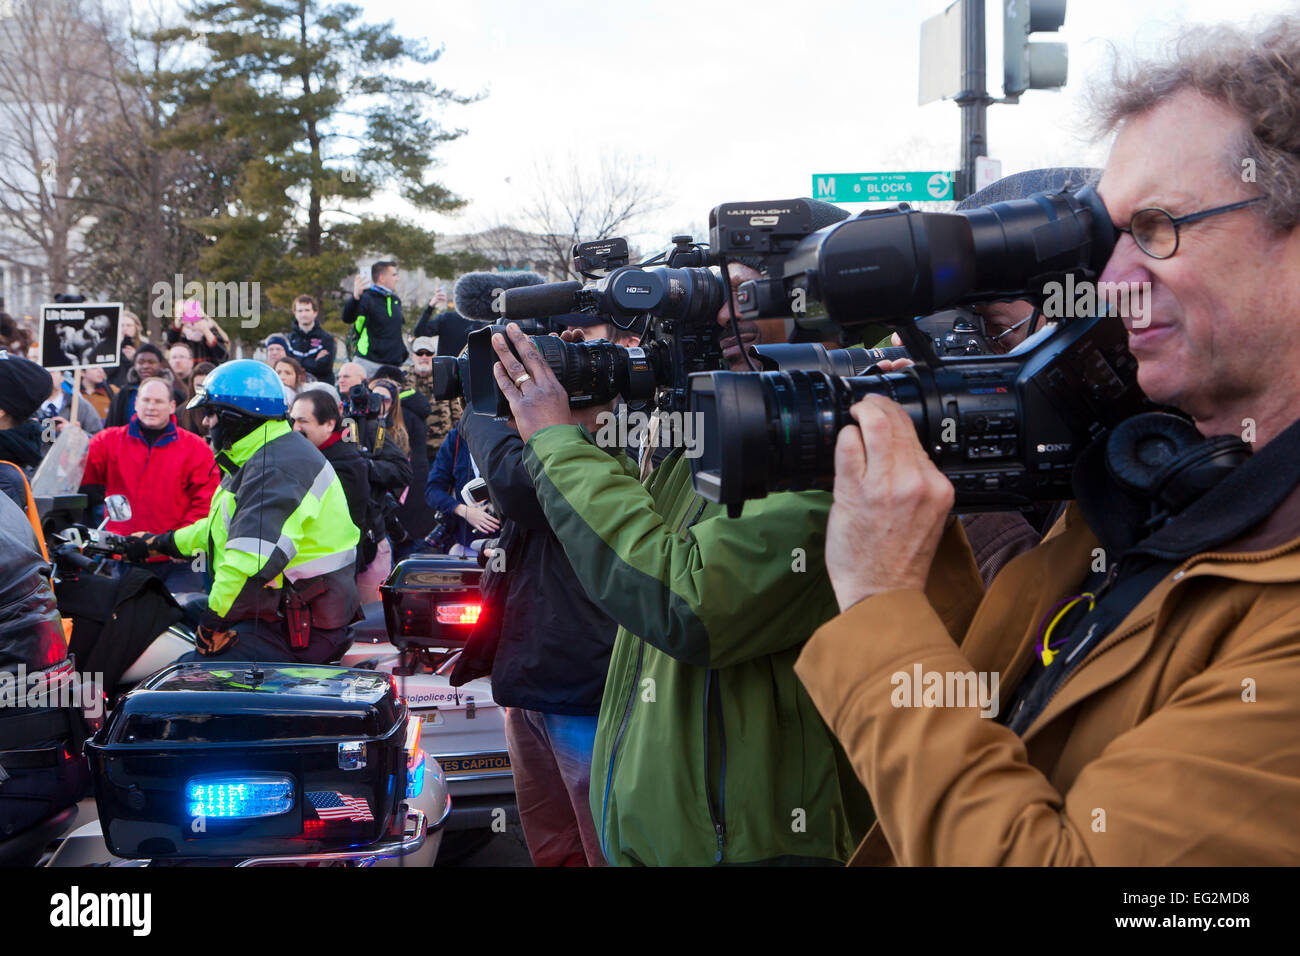 News cameraman at a protest - Washington, DC USA - Stock Image